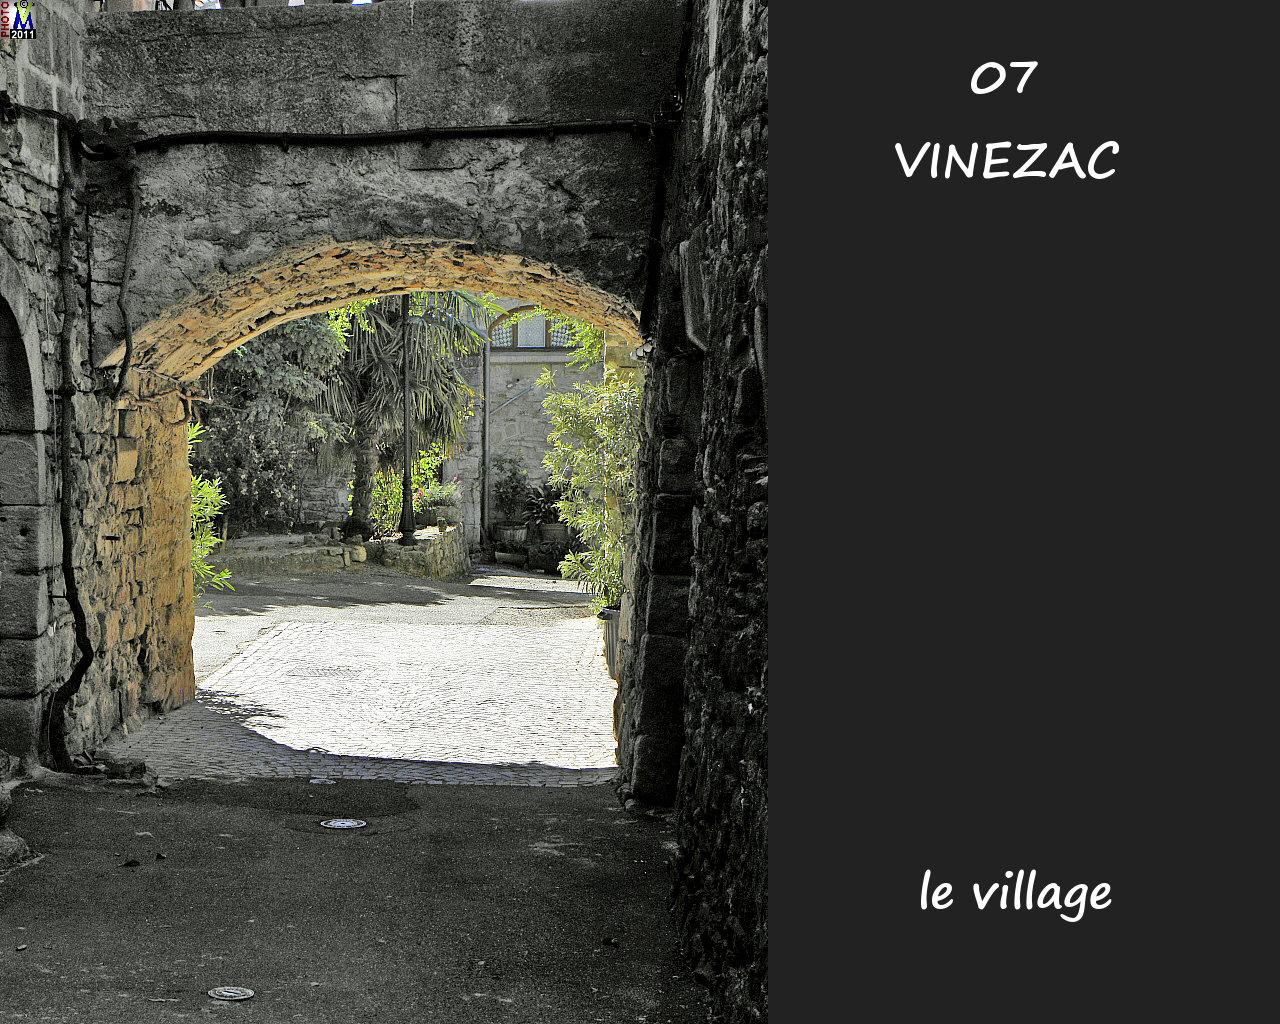 07VINEZAC_village_106.jpg